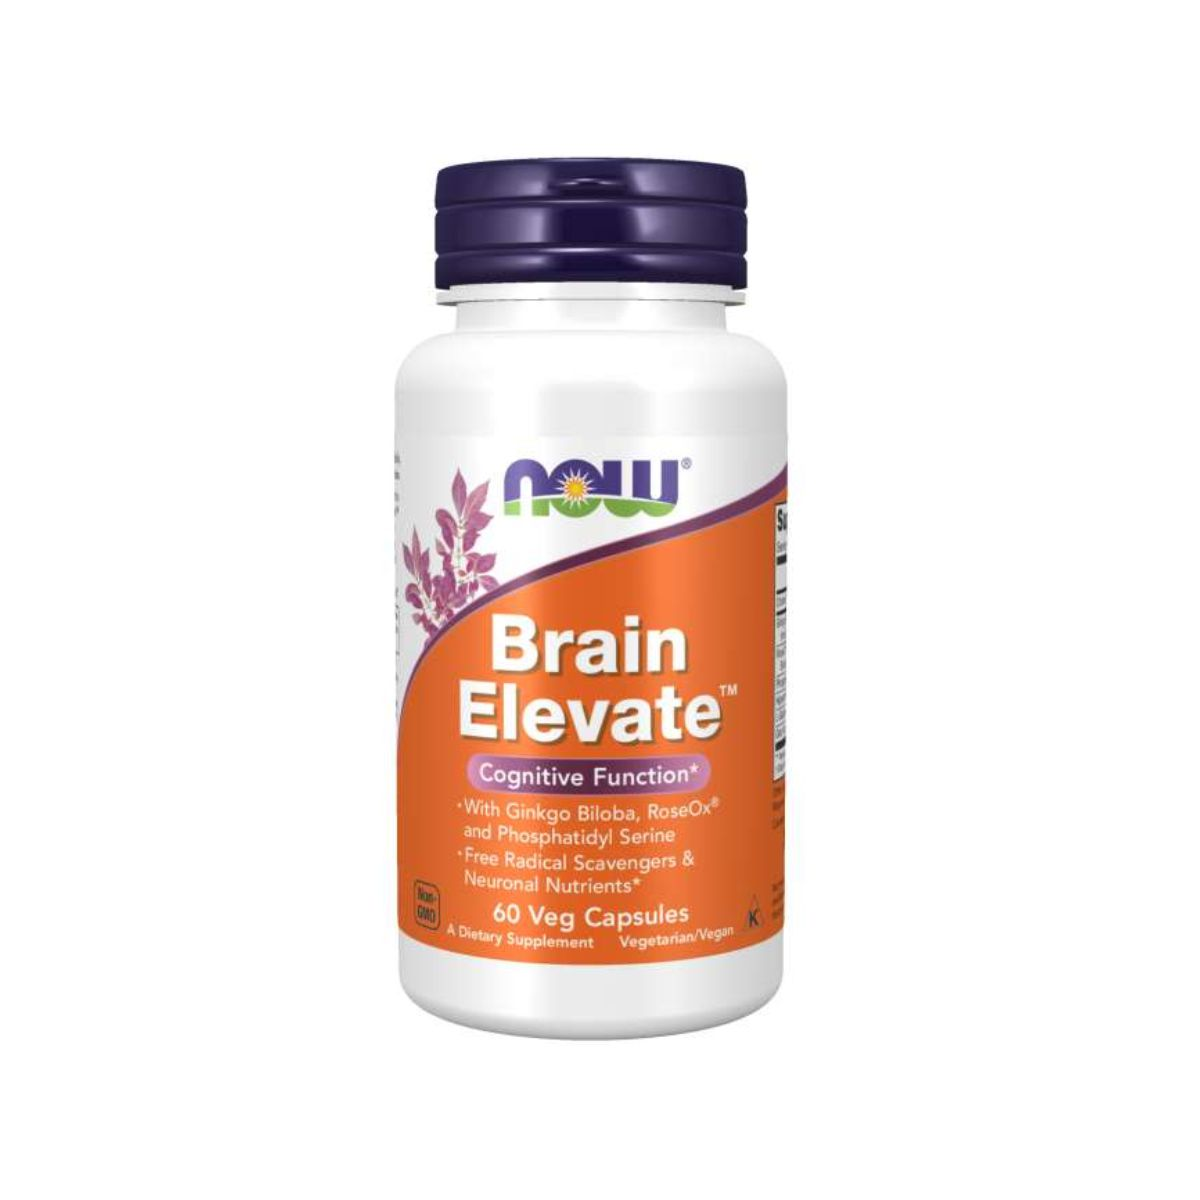 Brain Elevate Coegnitive Function 60Caps - Now Foods